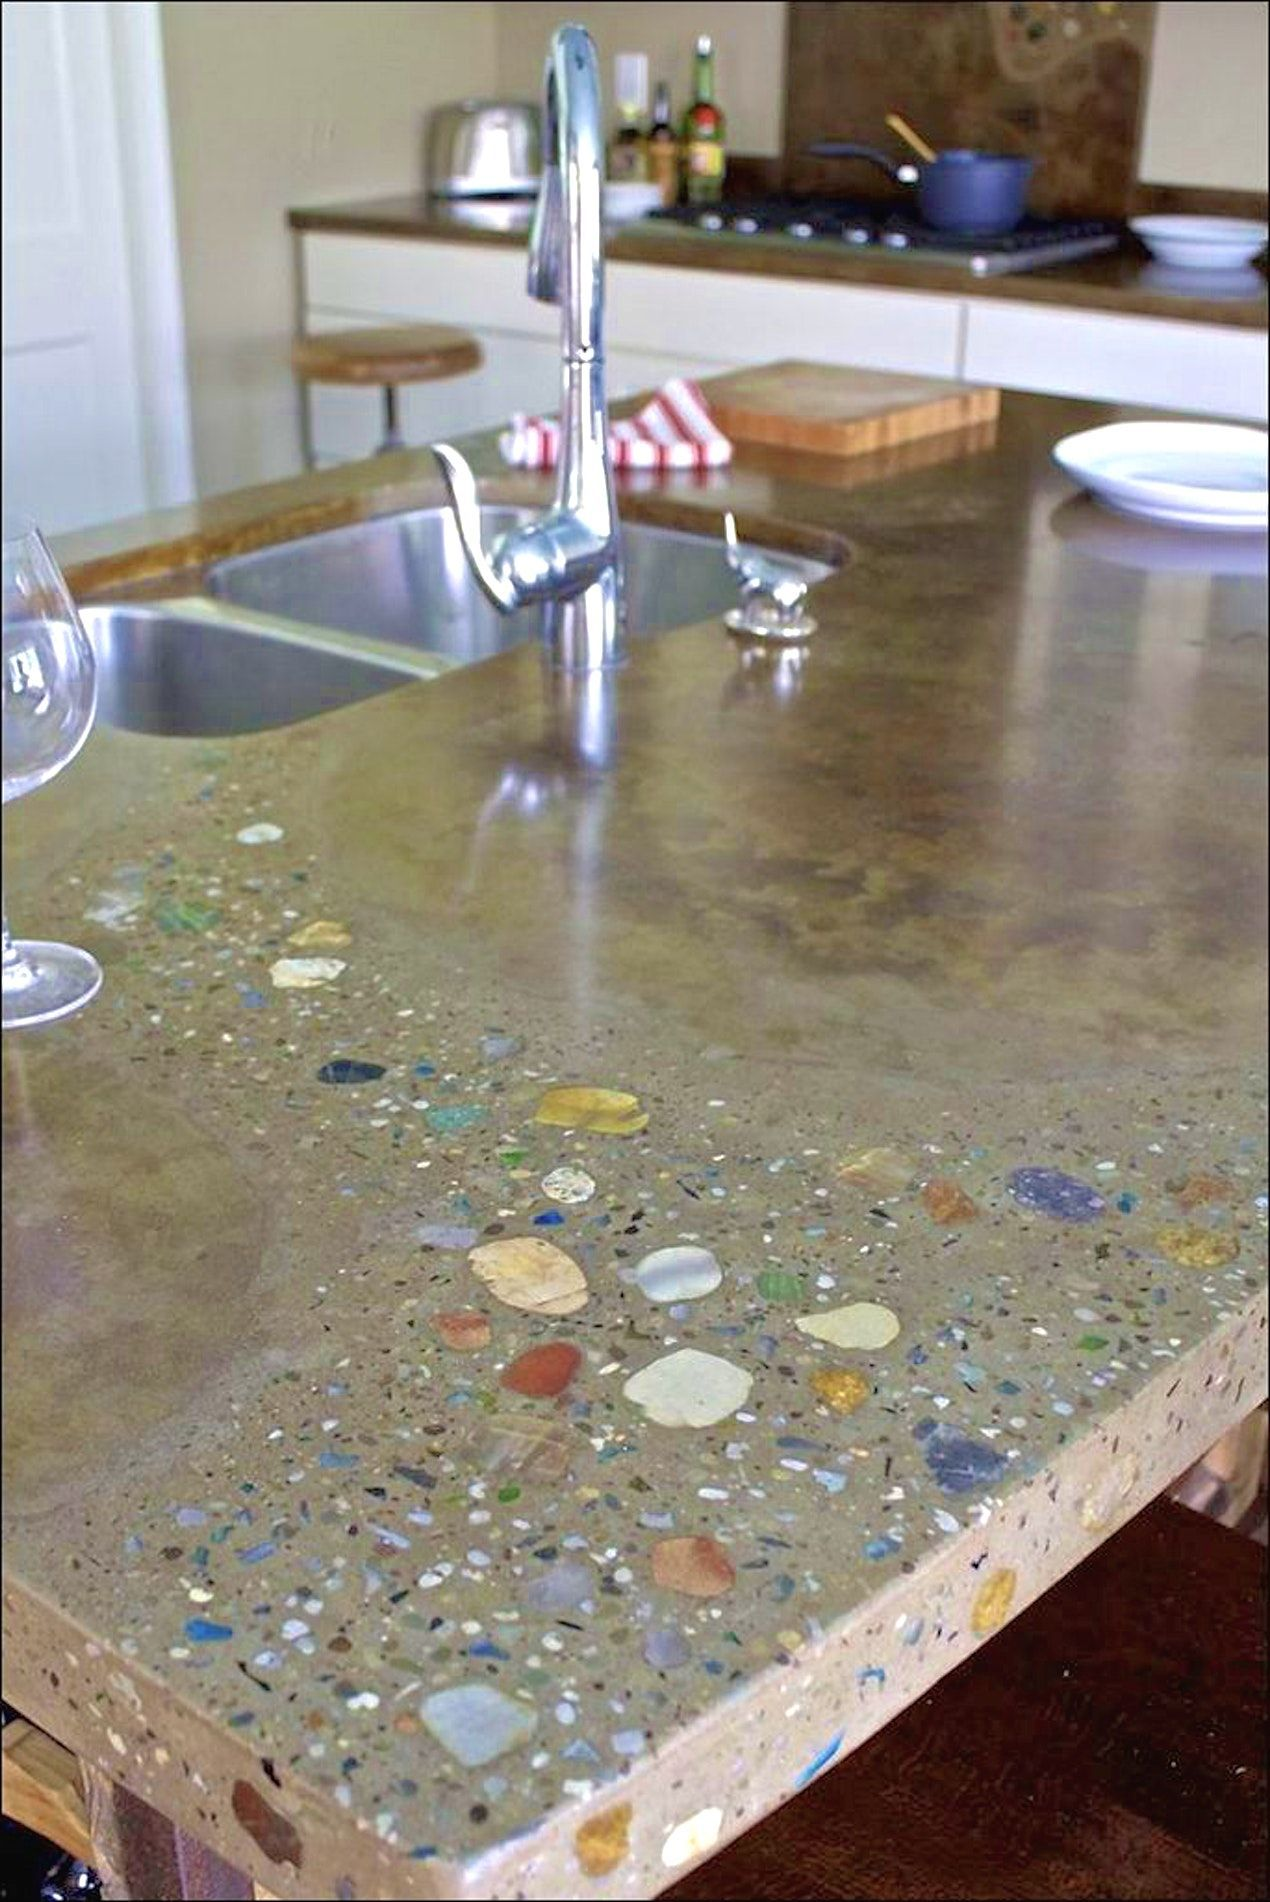 162 Reference Of Diy Crushed Glass Countertops In 2020 Glass Countertops Recycled Glass Countertops Kitchen Countertops